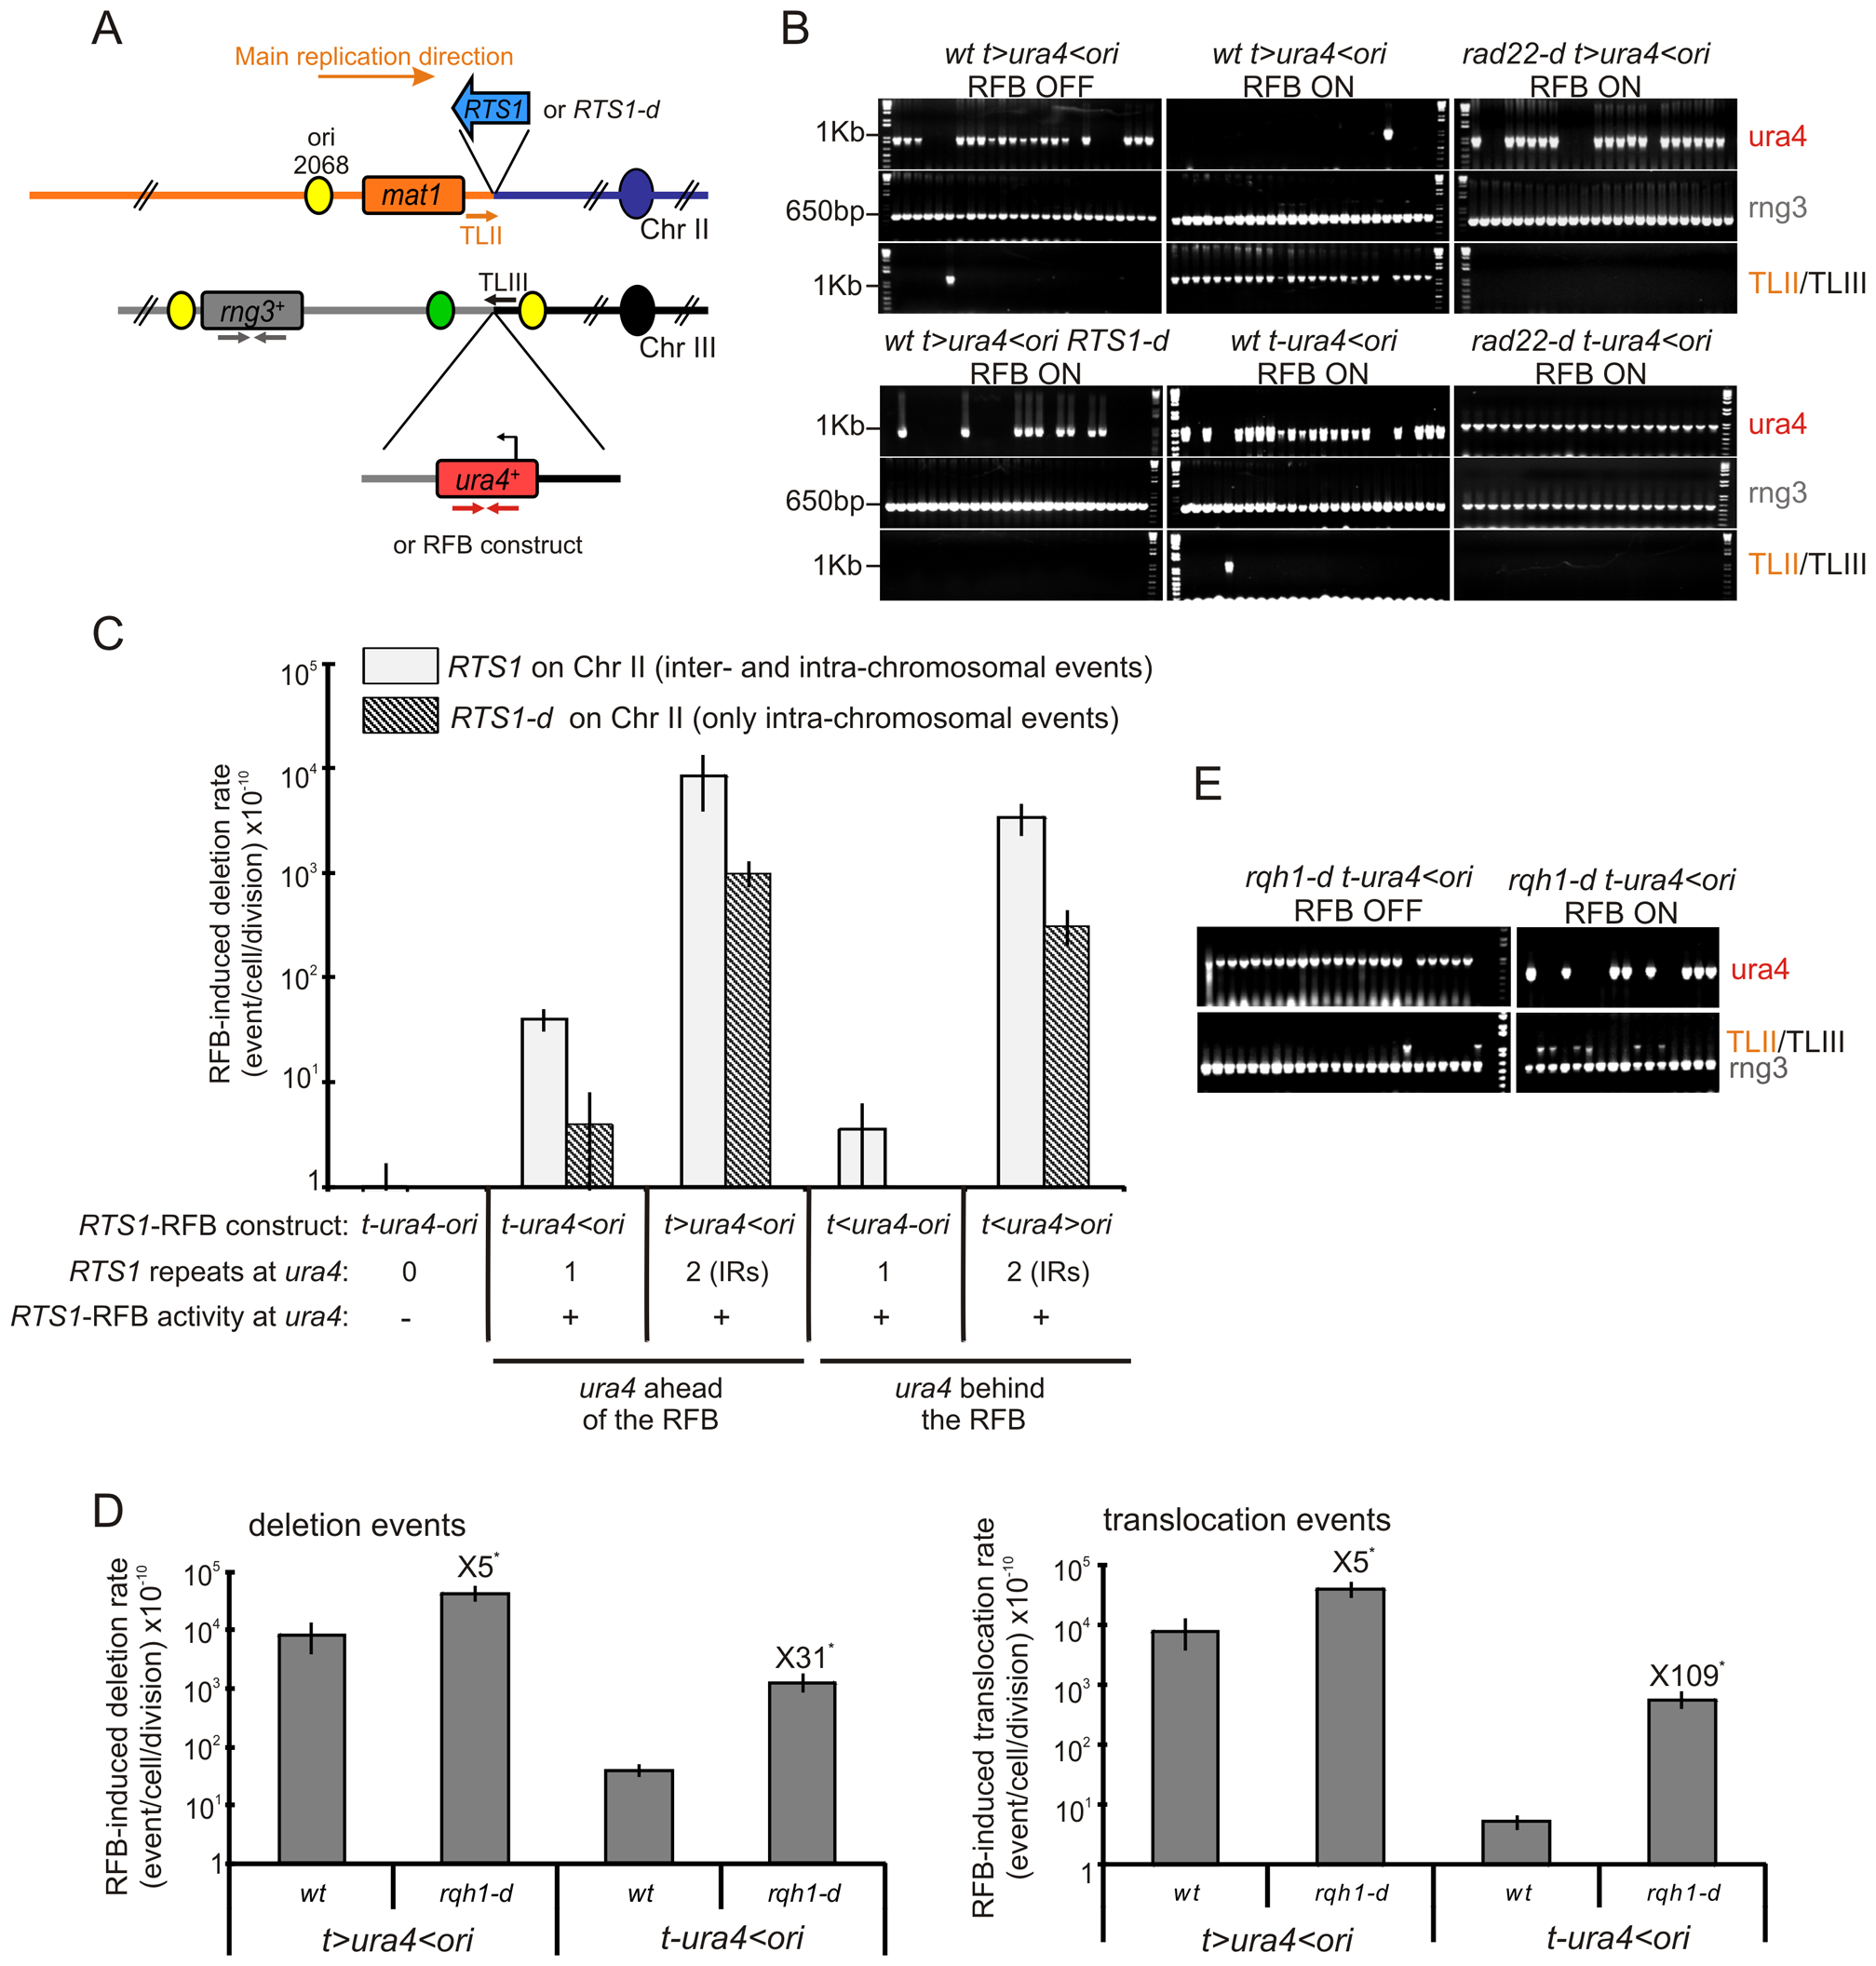 A single fork-arrest induces GCRs that are stimulated by inverted repeats near the site of fork arrest.